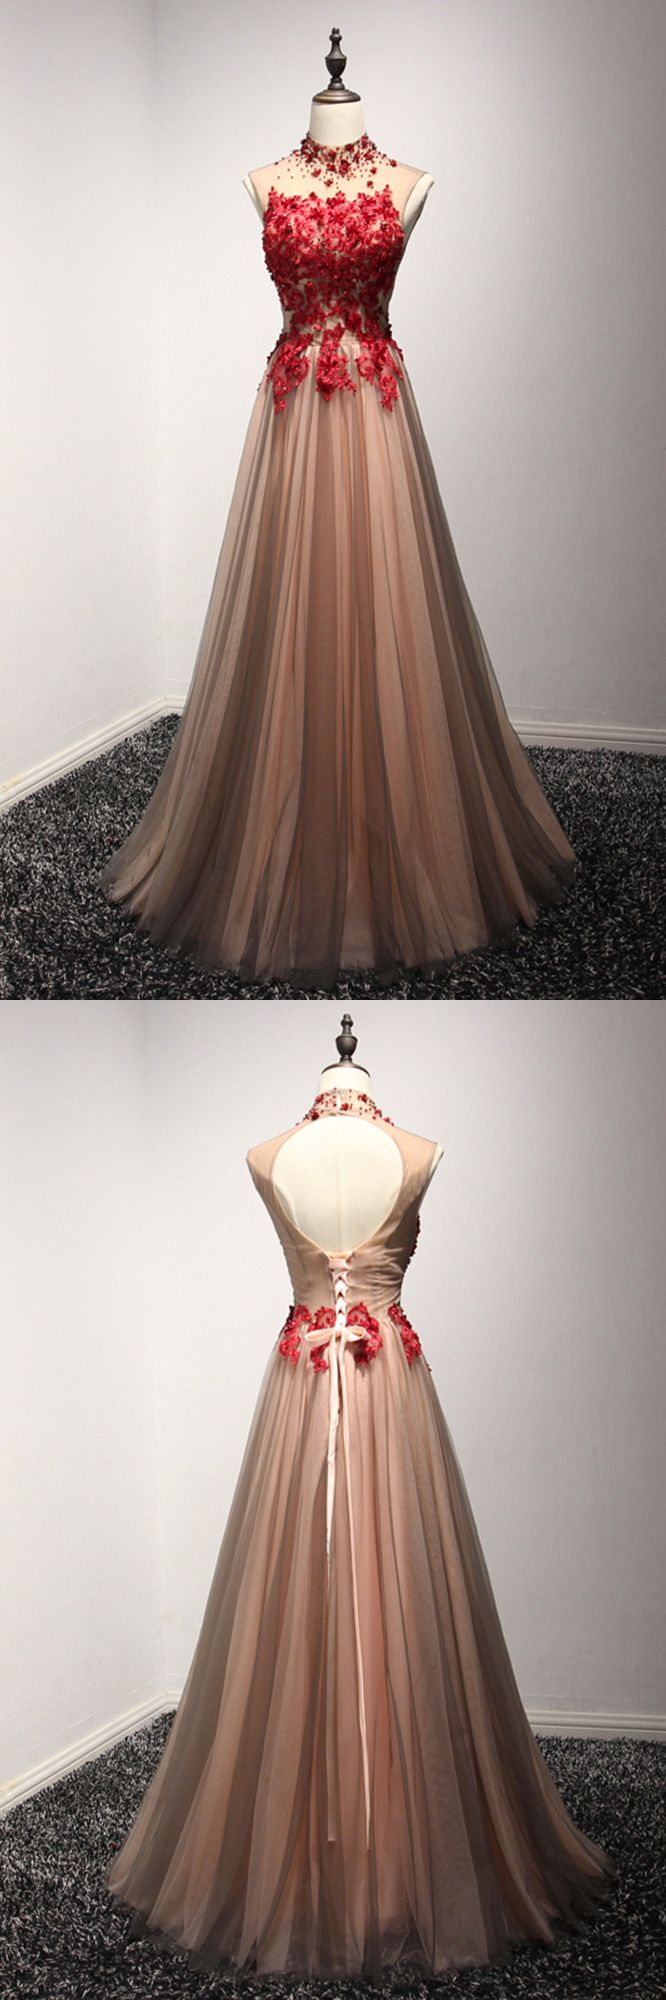 Modest black and red high neck prom dress long with floral beading